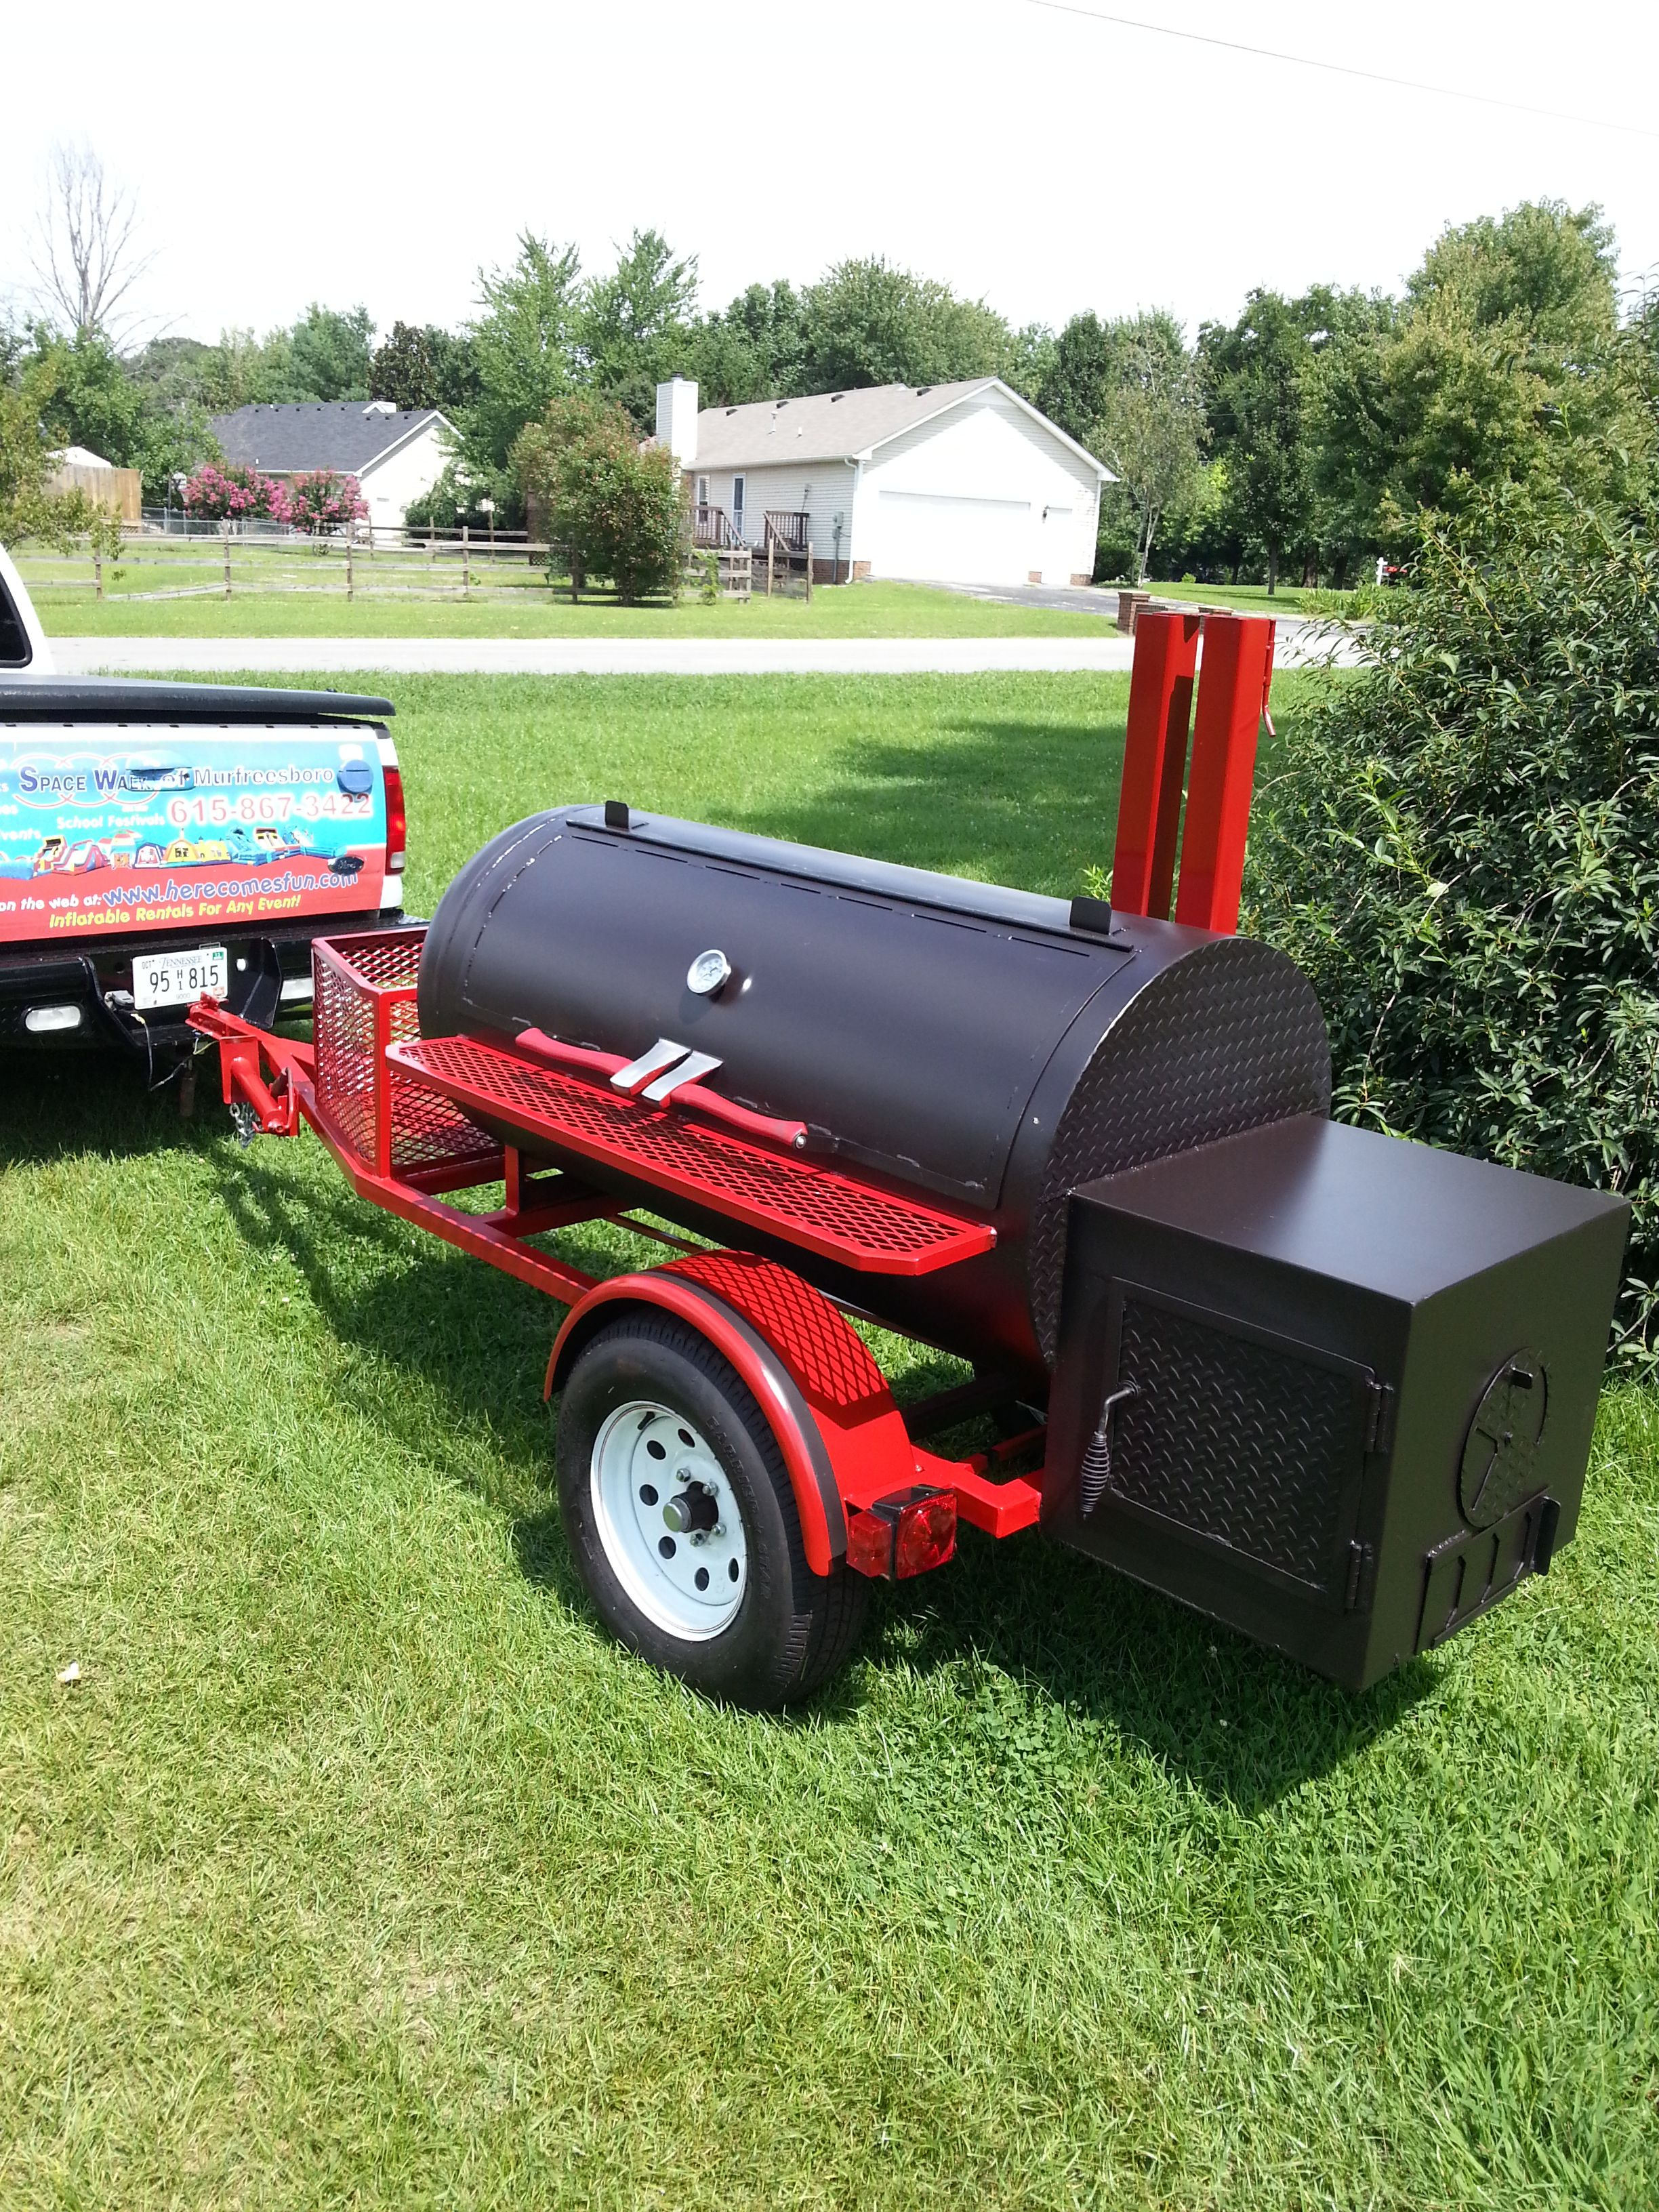 jambo pits u0027 offset smokers produce award winning bbq in sleek